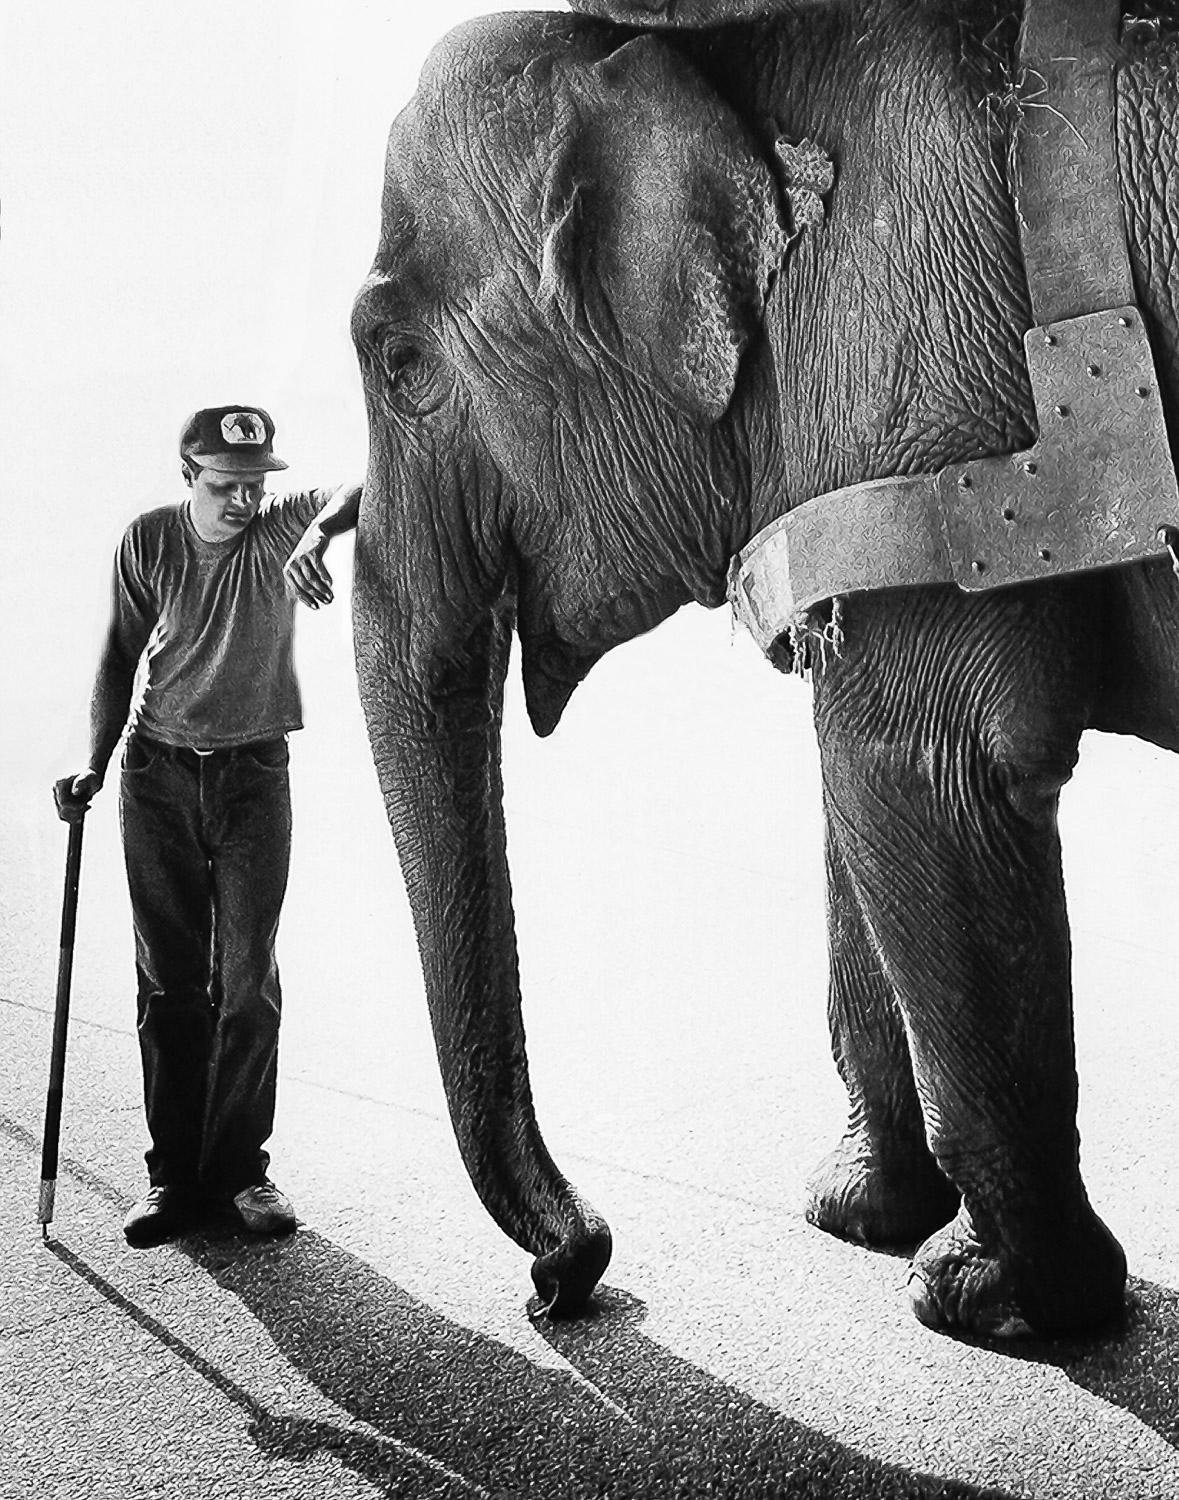 Elephant-And-TrainerLeans-Against-Trunk-BW.jpg